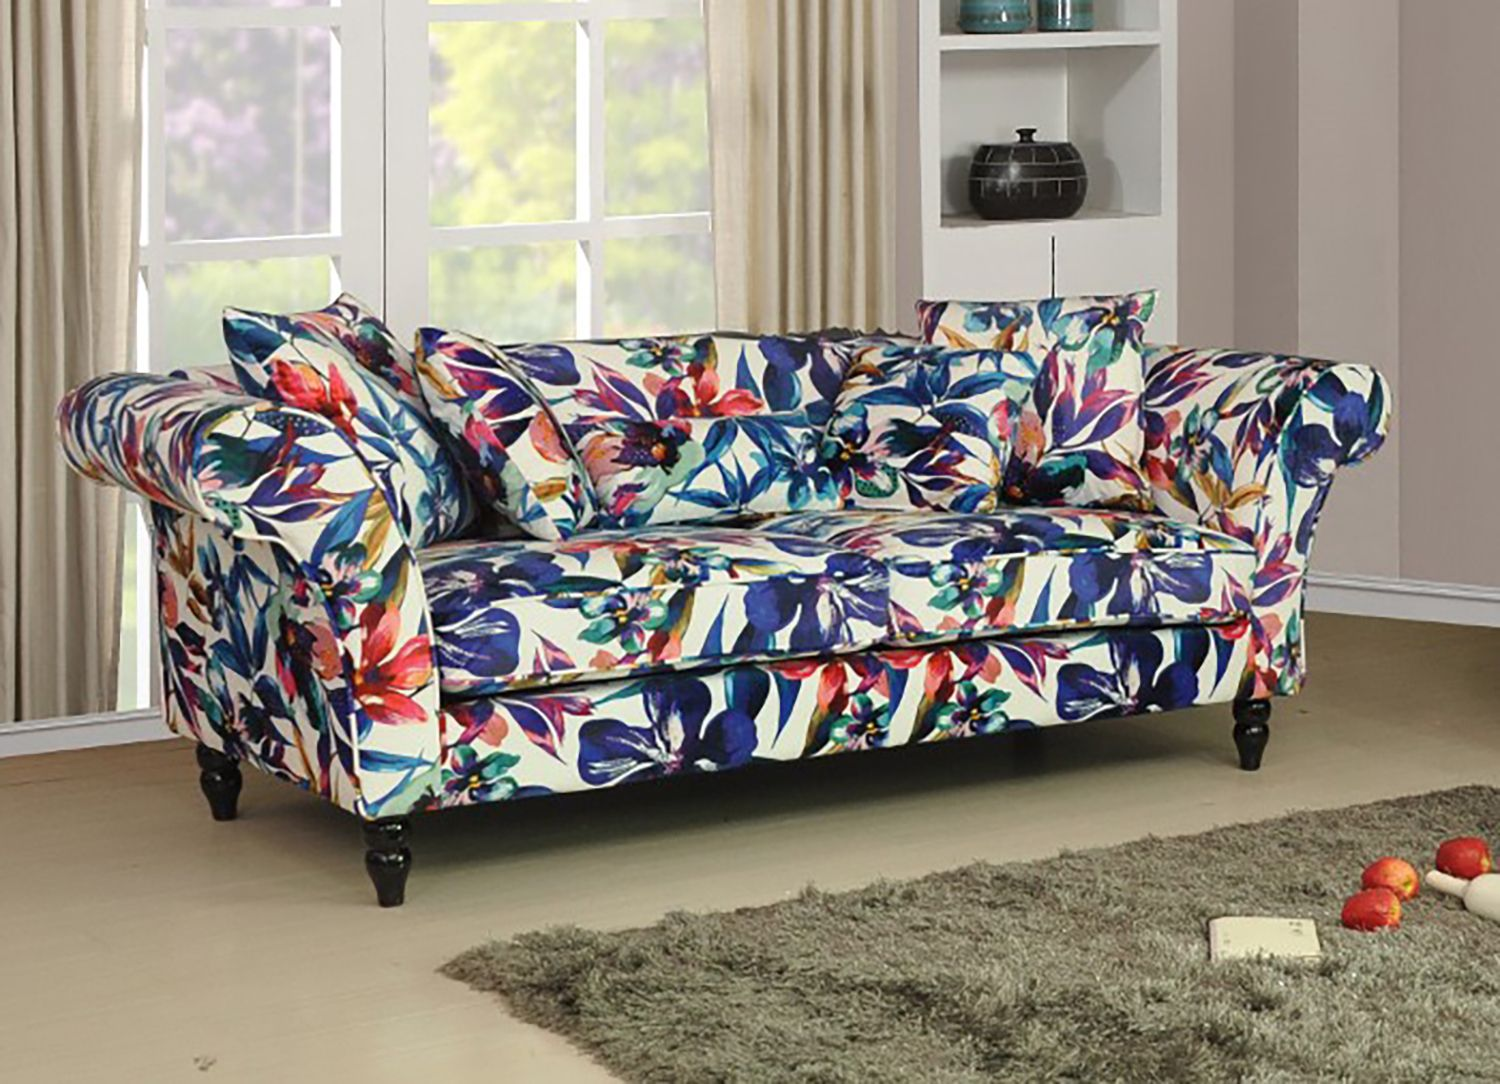 Trend Patterned Fabric Sofas 23 About Remodel Seater Sofa